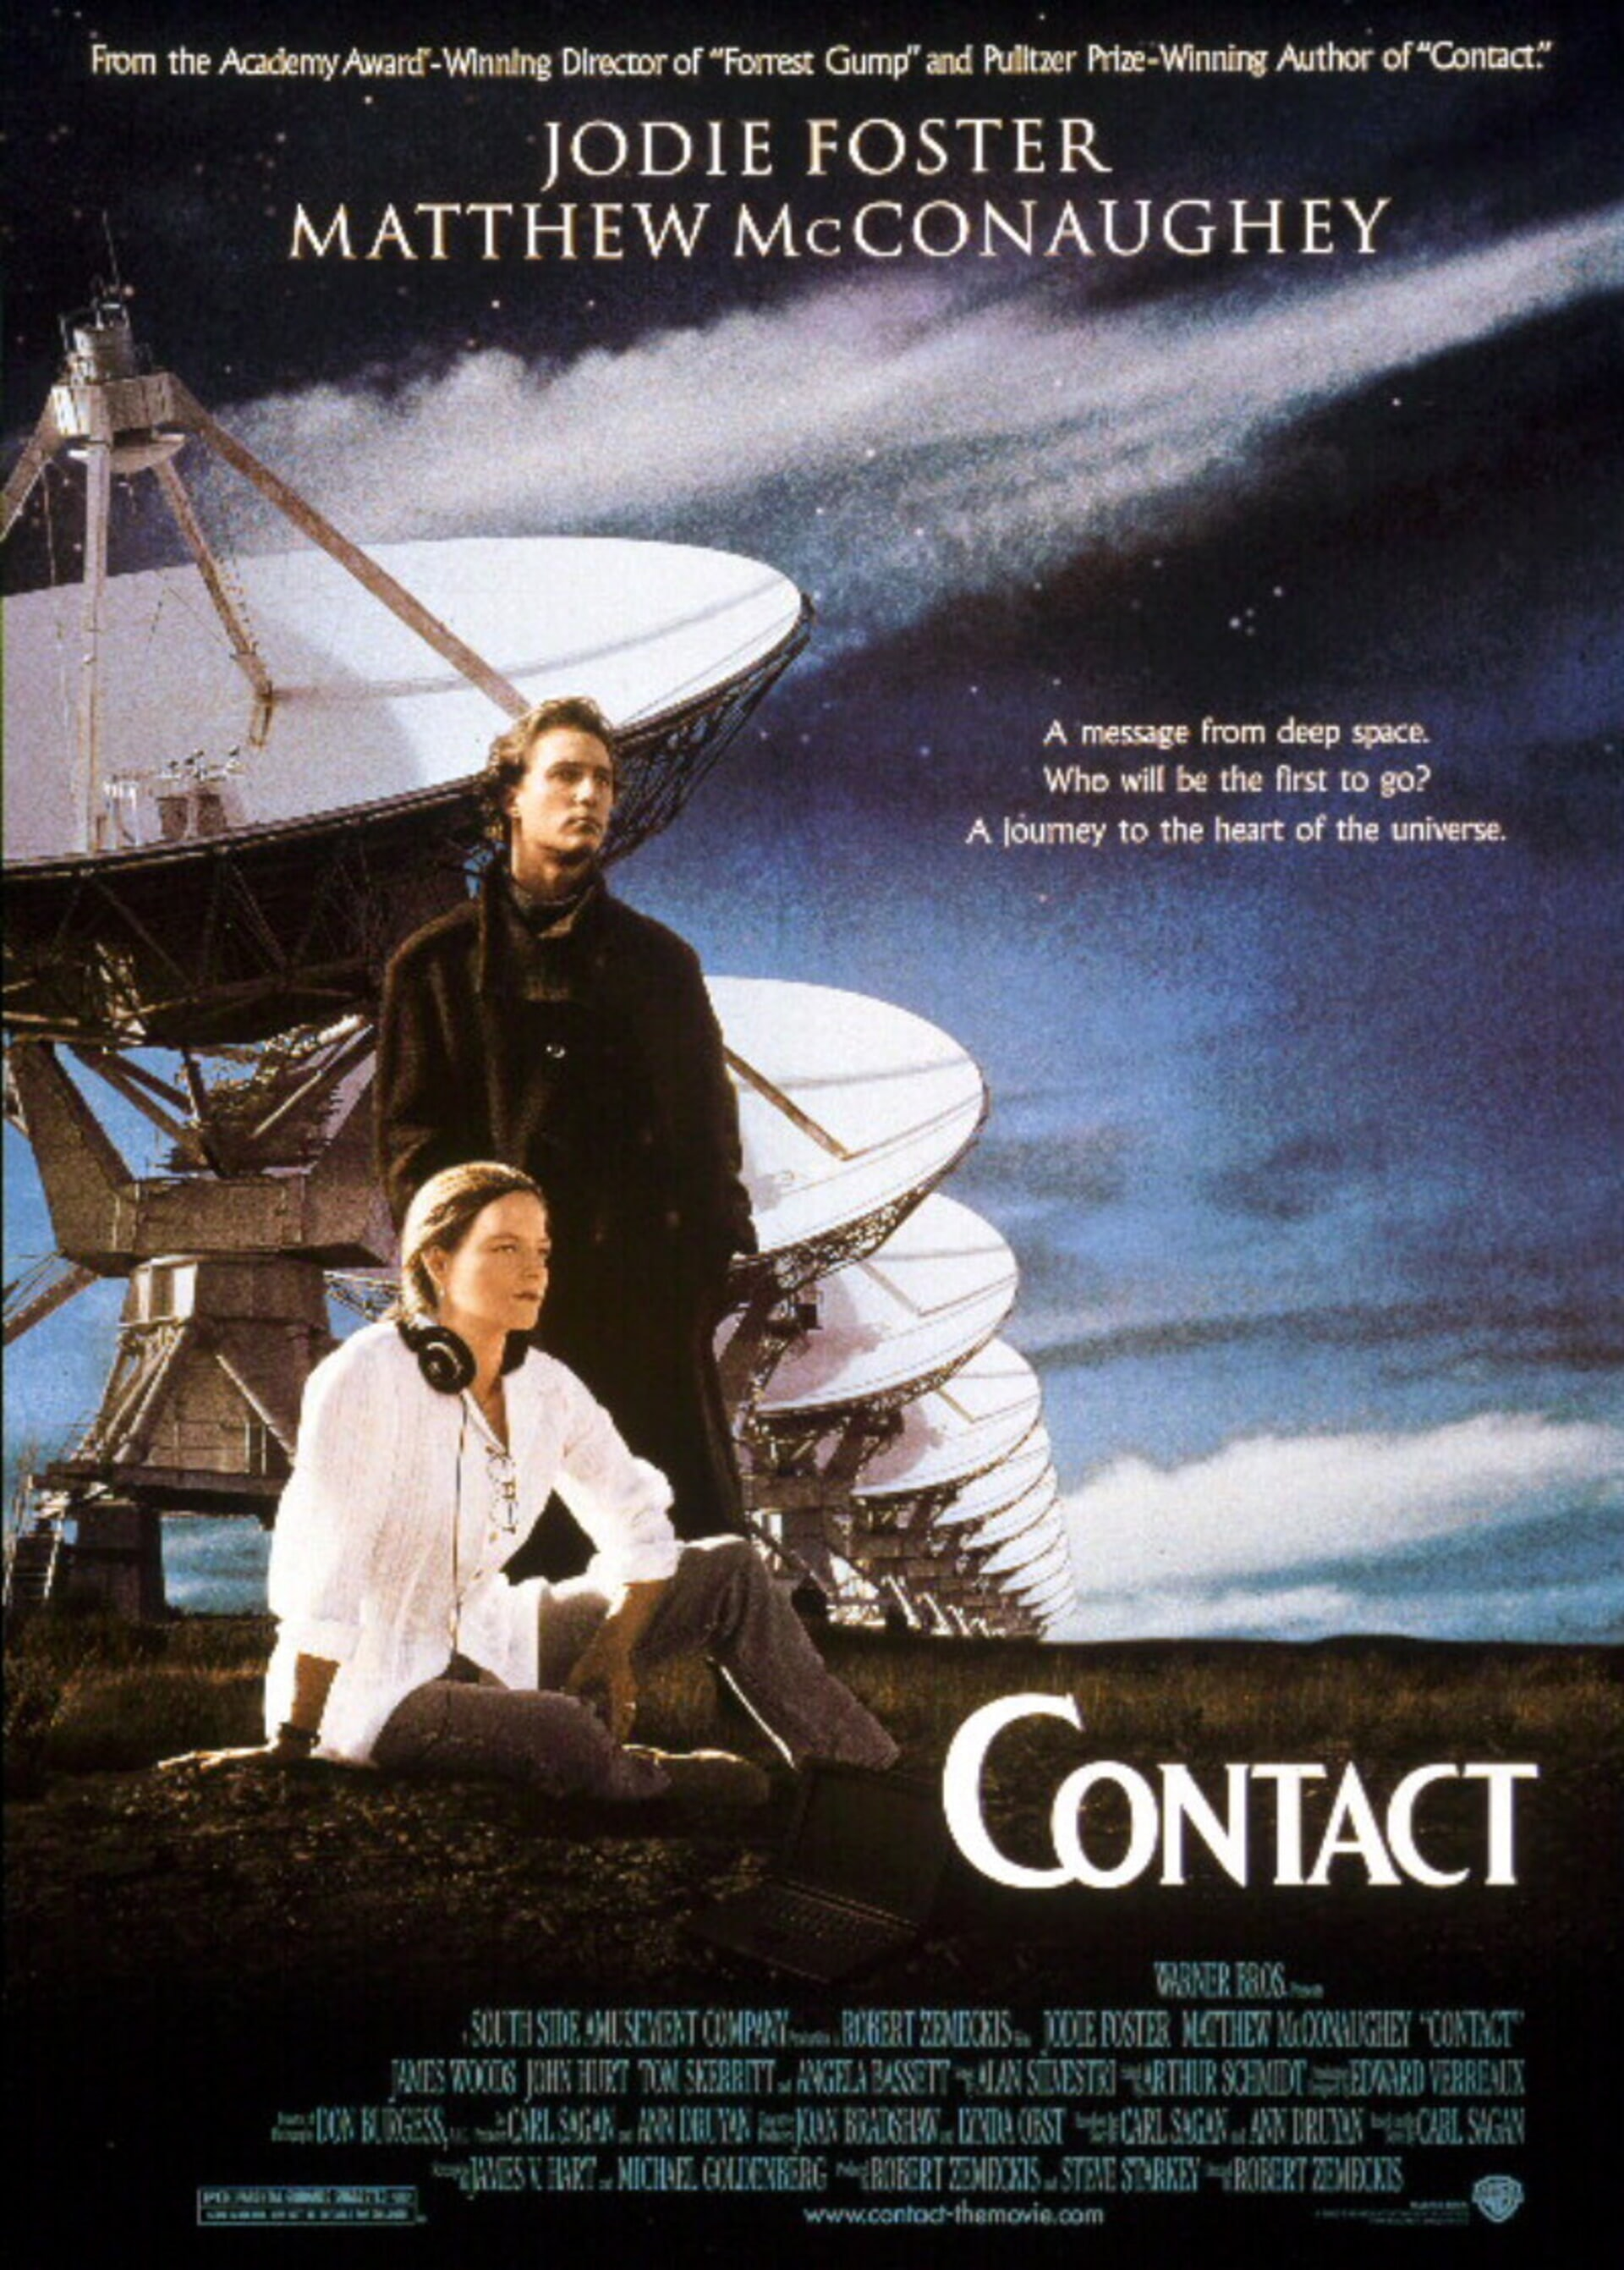 Contact - Poster 1